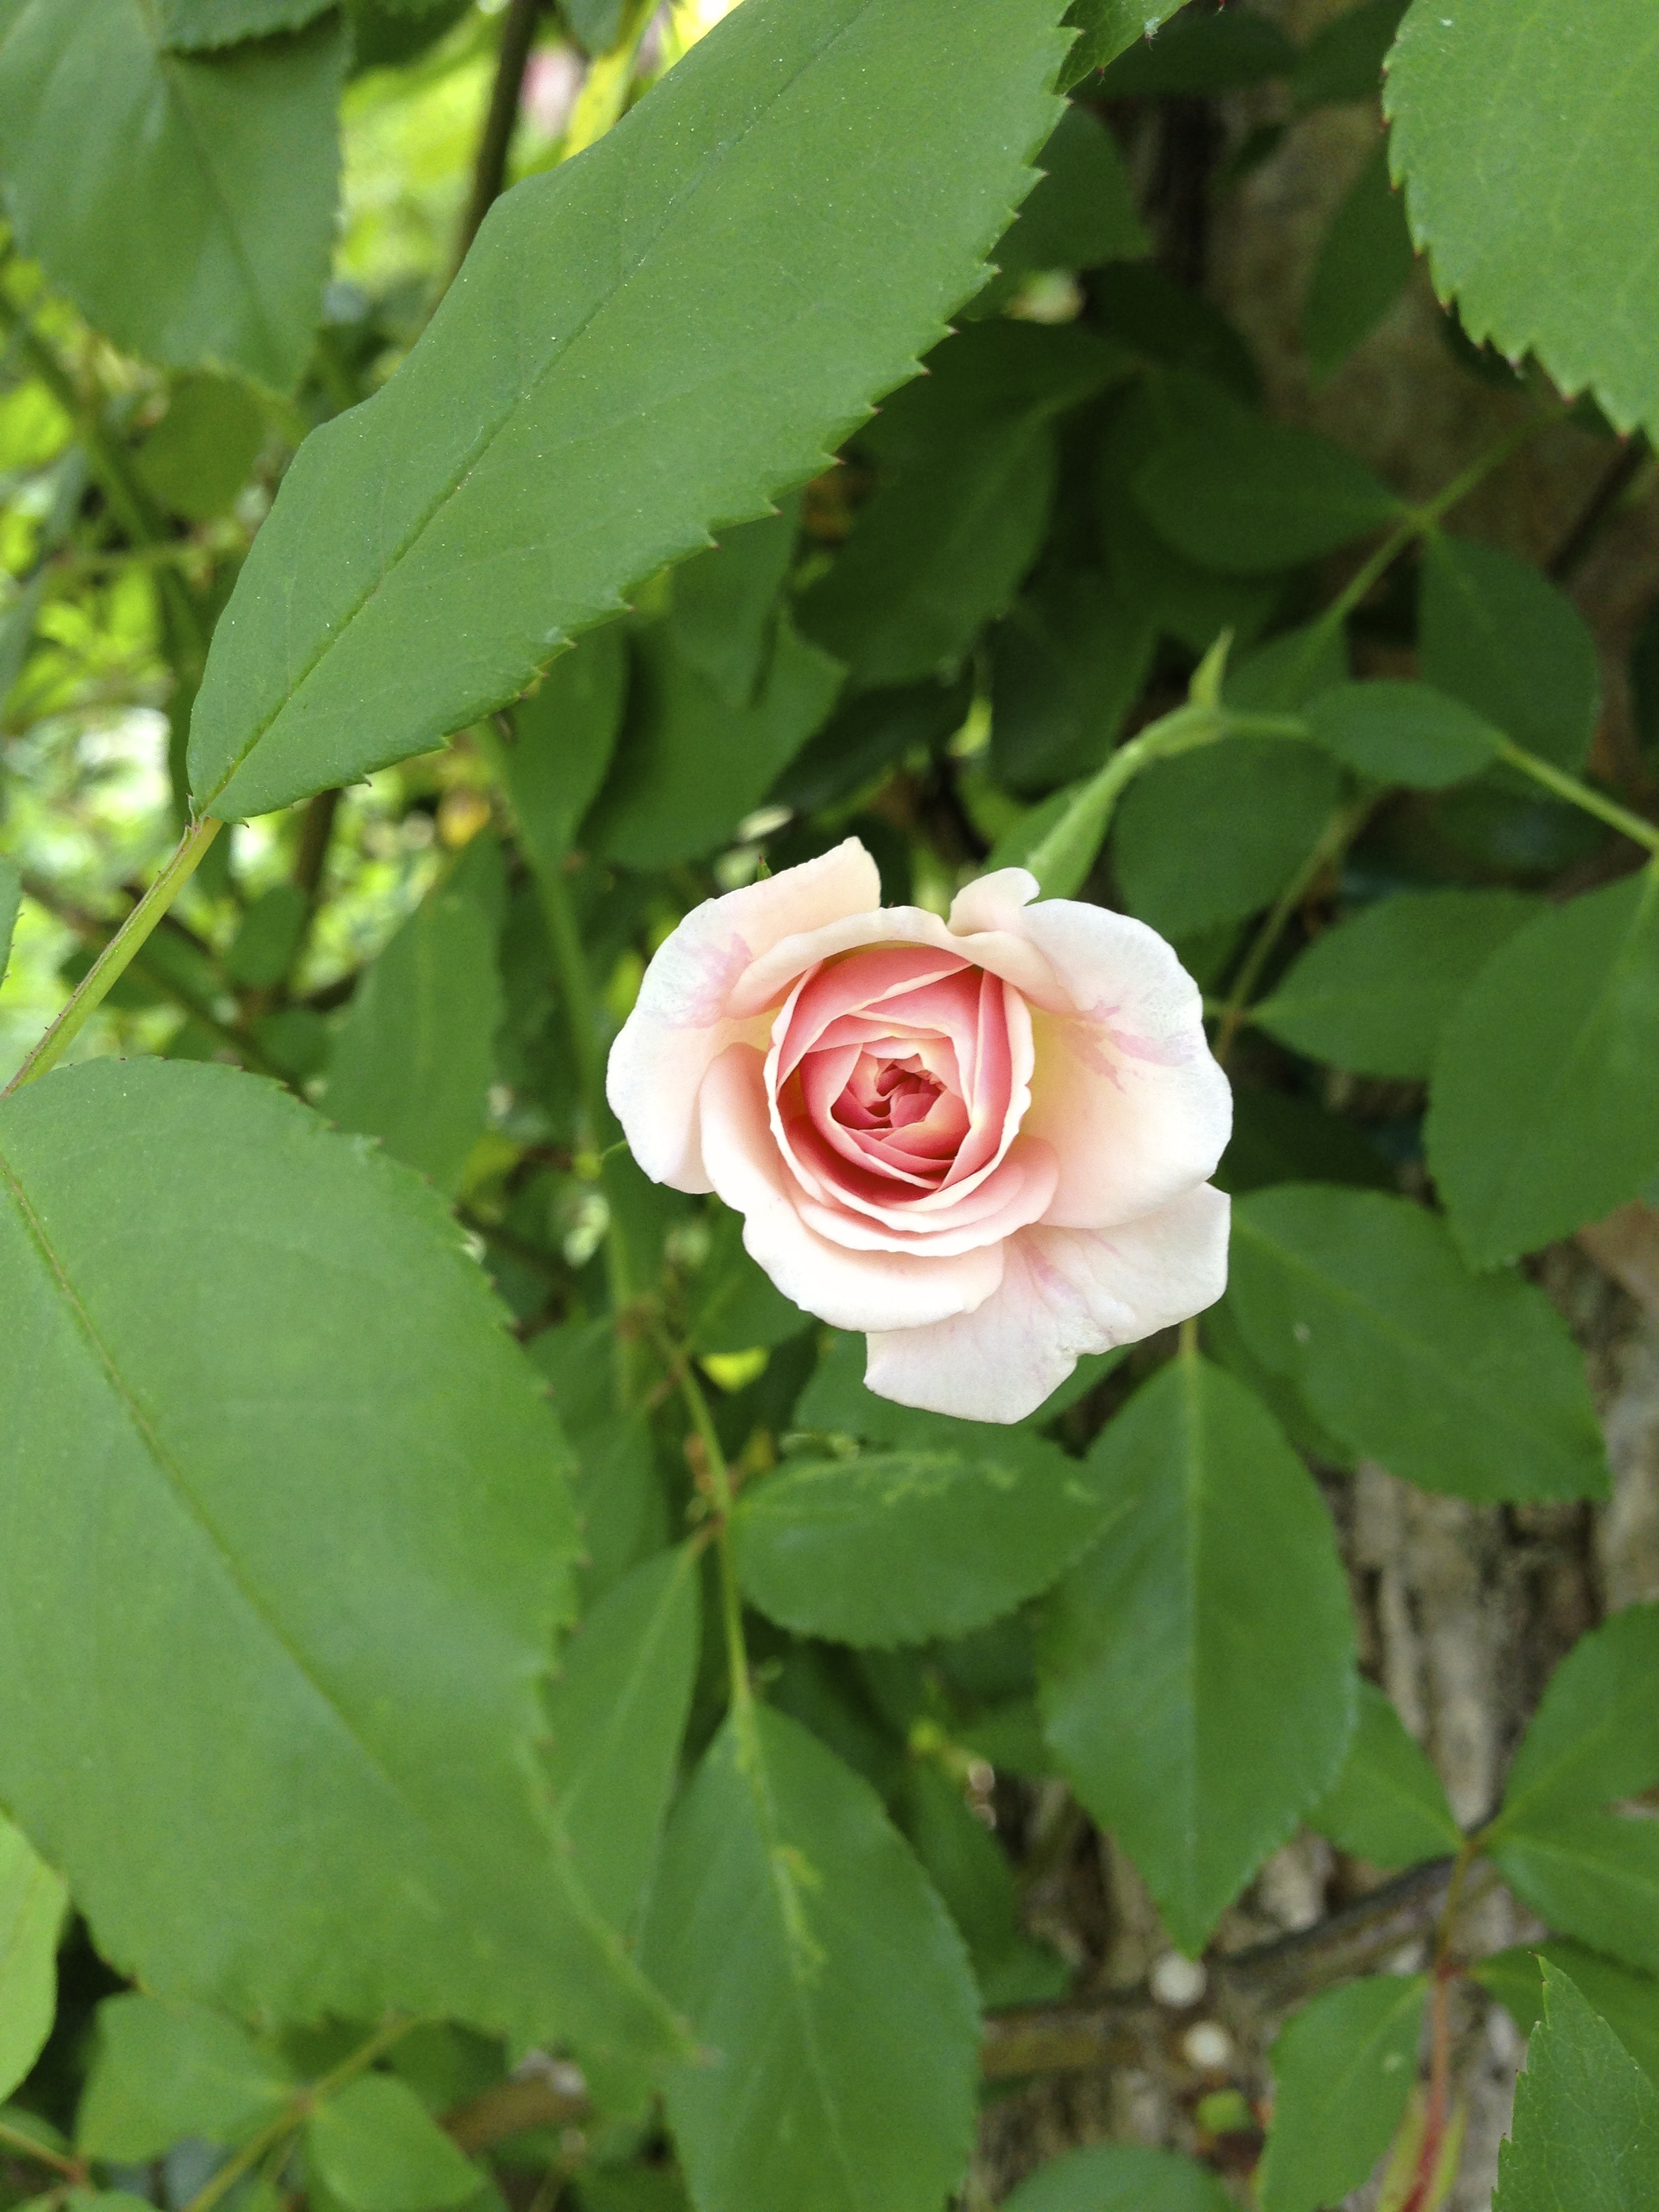 Another one of our old climbing roses.